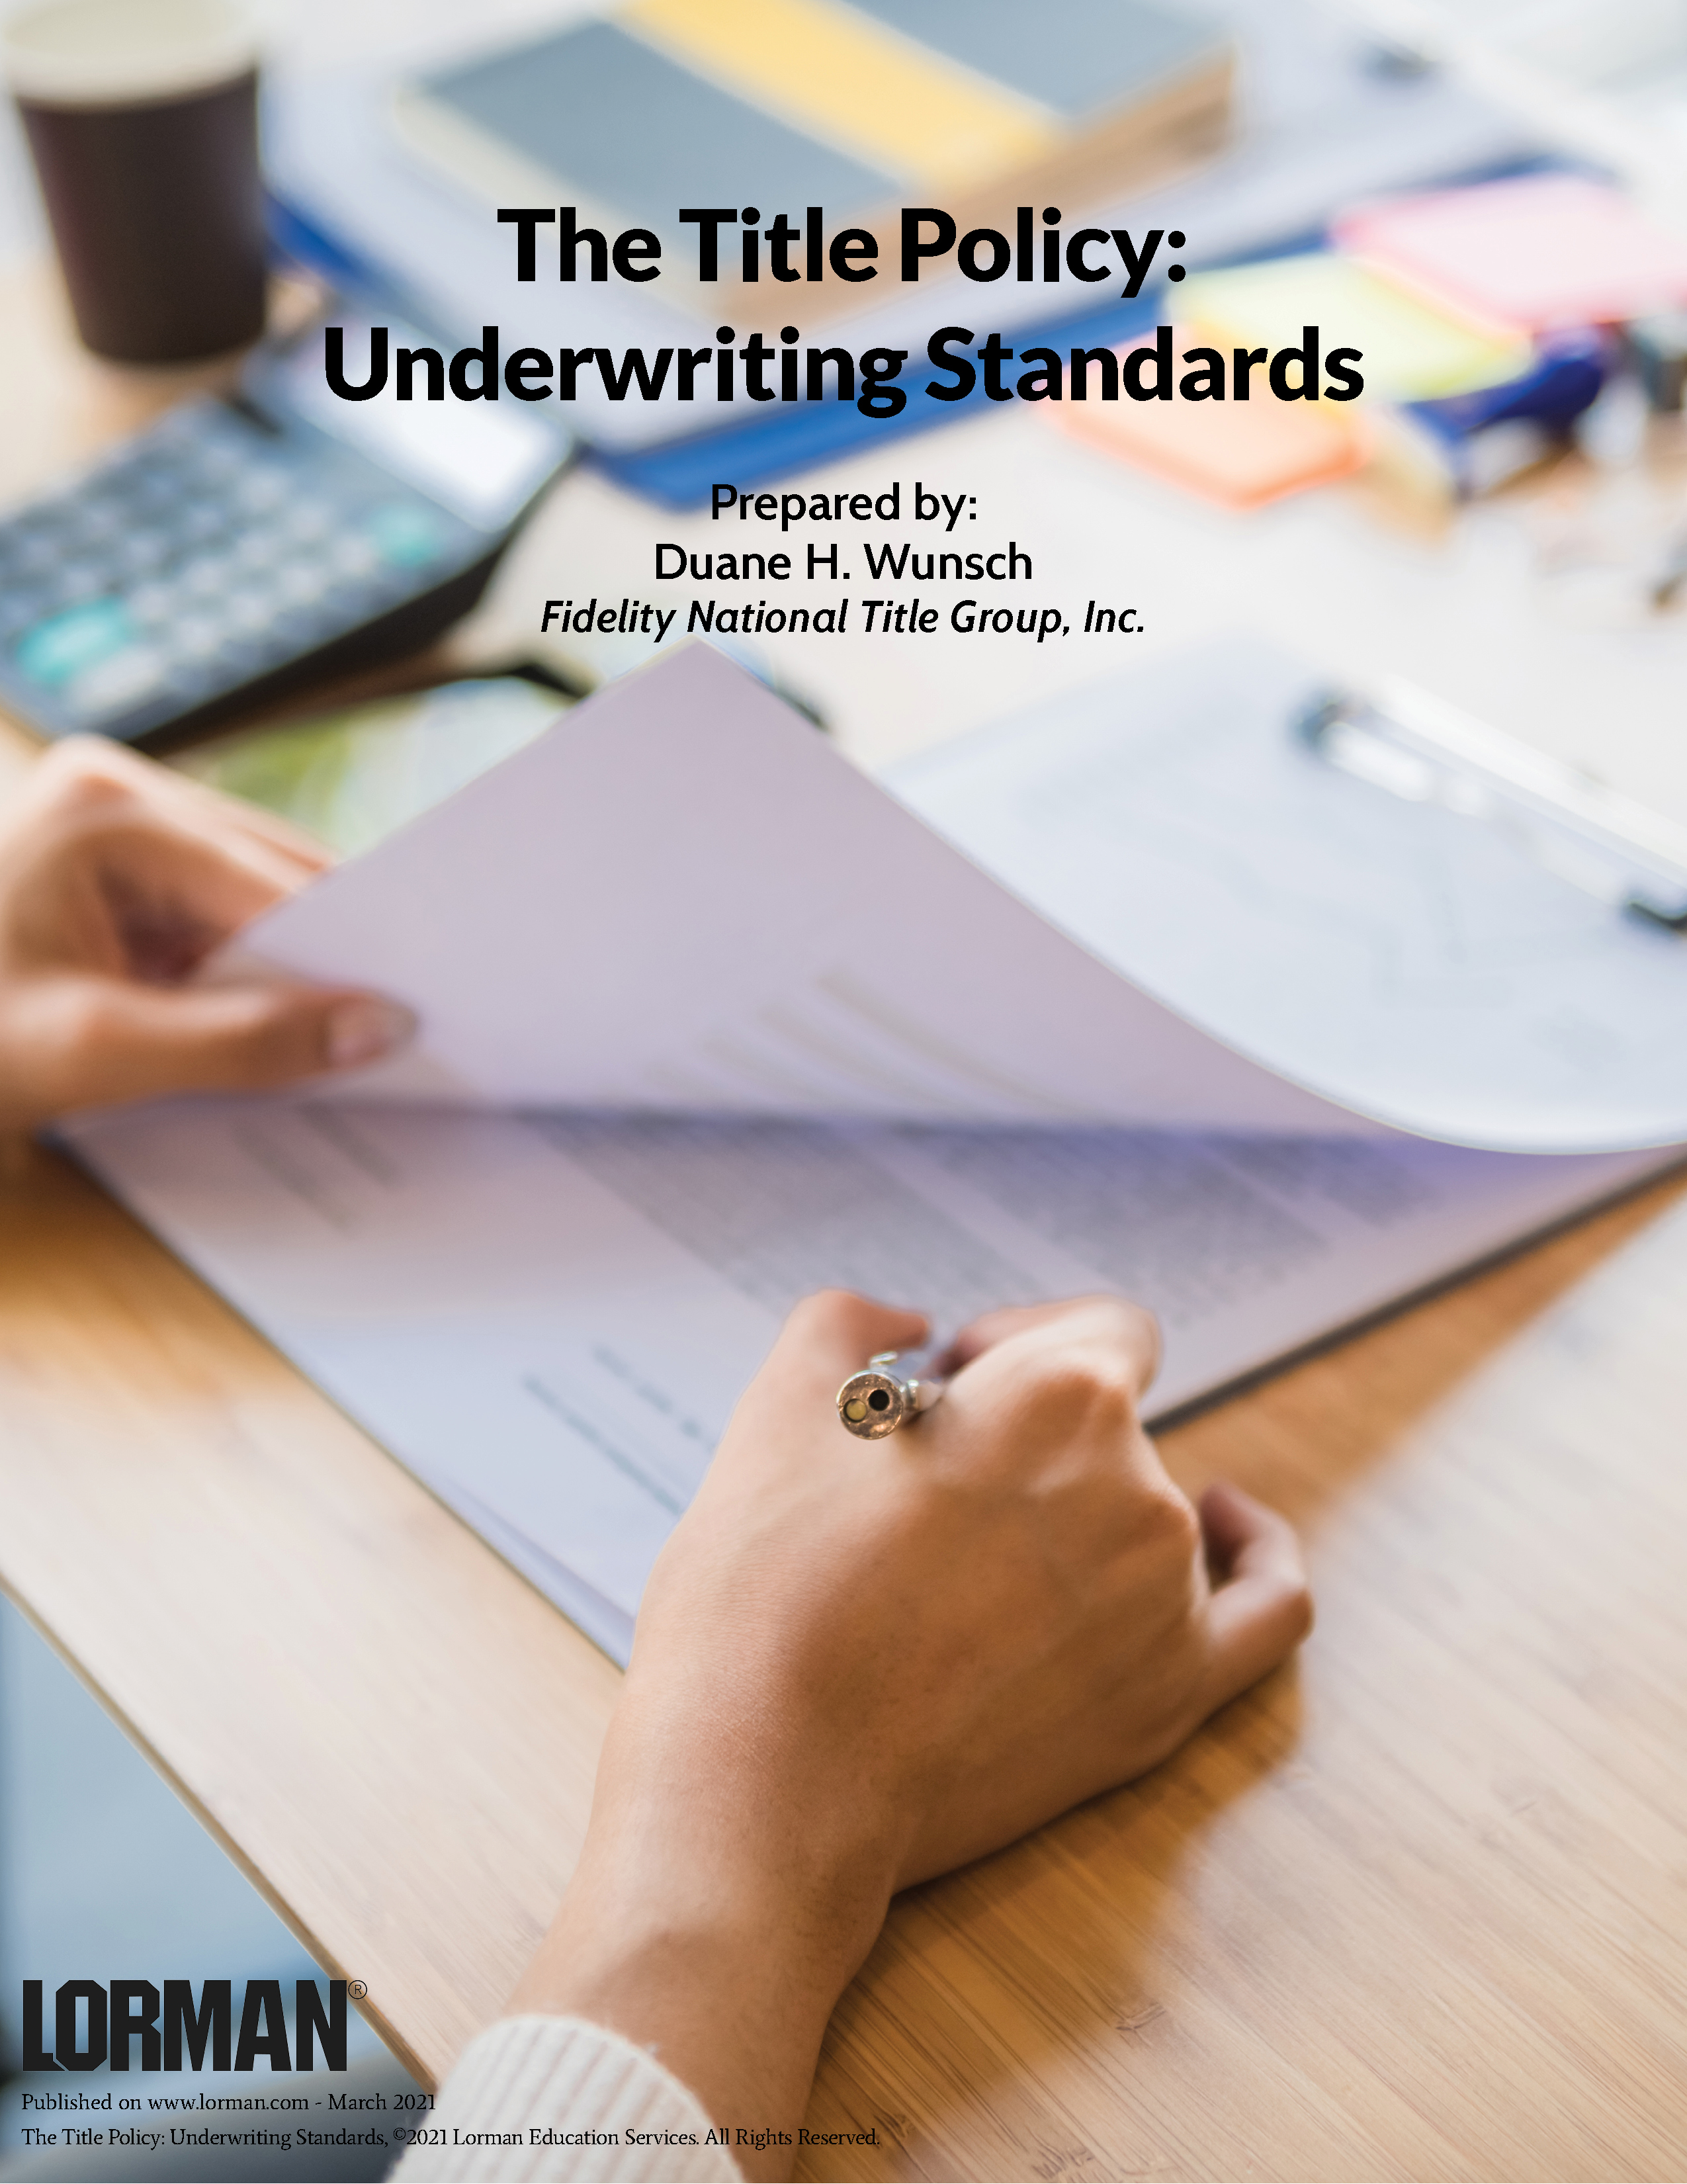 The Title Policy: Underwriting Standards